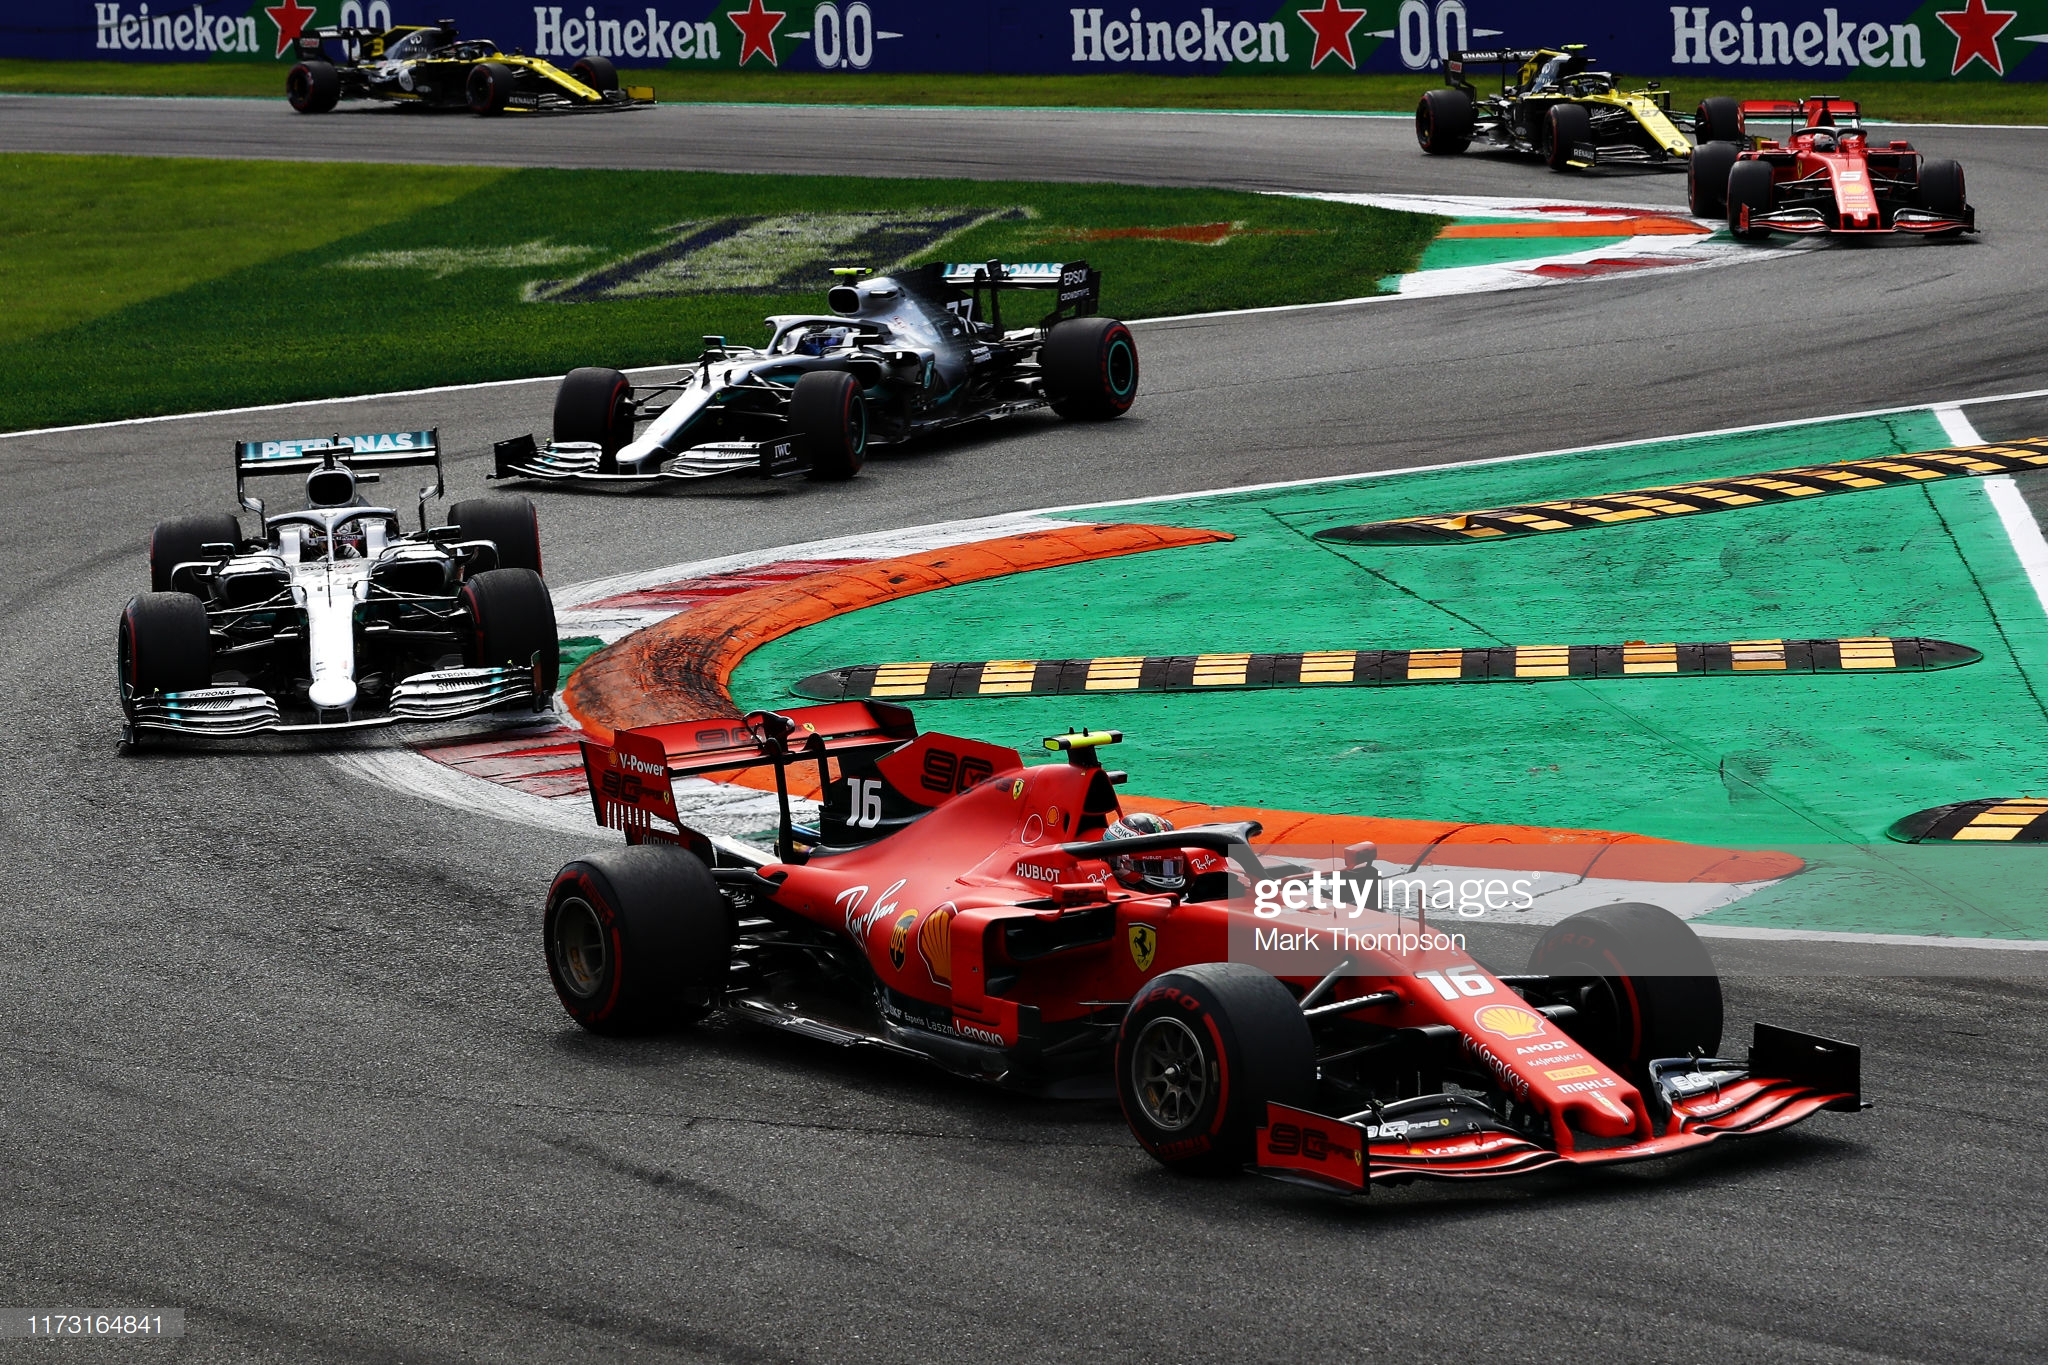 Formula One driver Charles Leclerc leading Lewis Hamilton at the Grand Prix of Italy